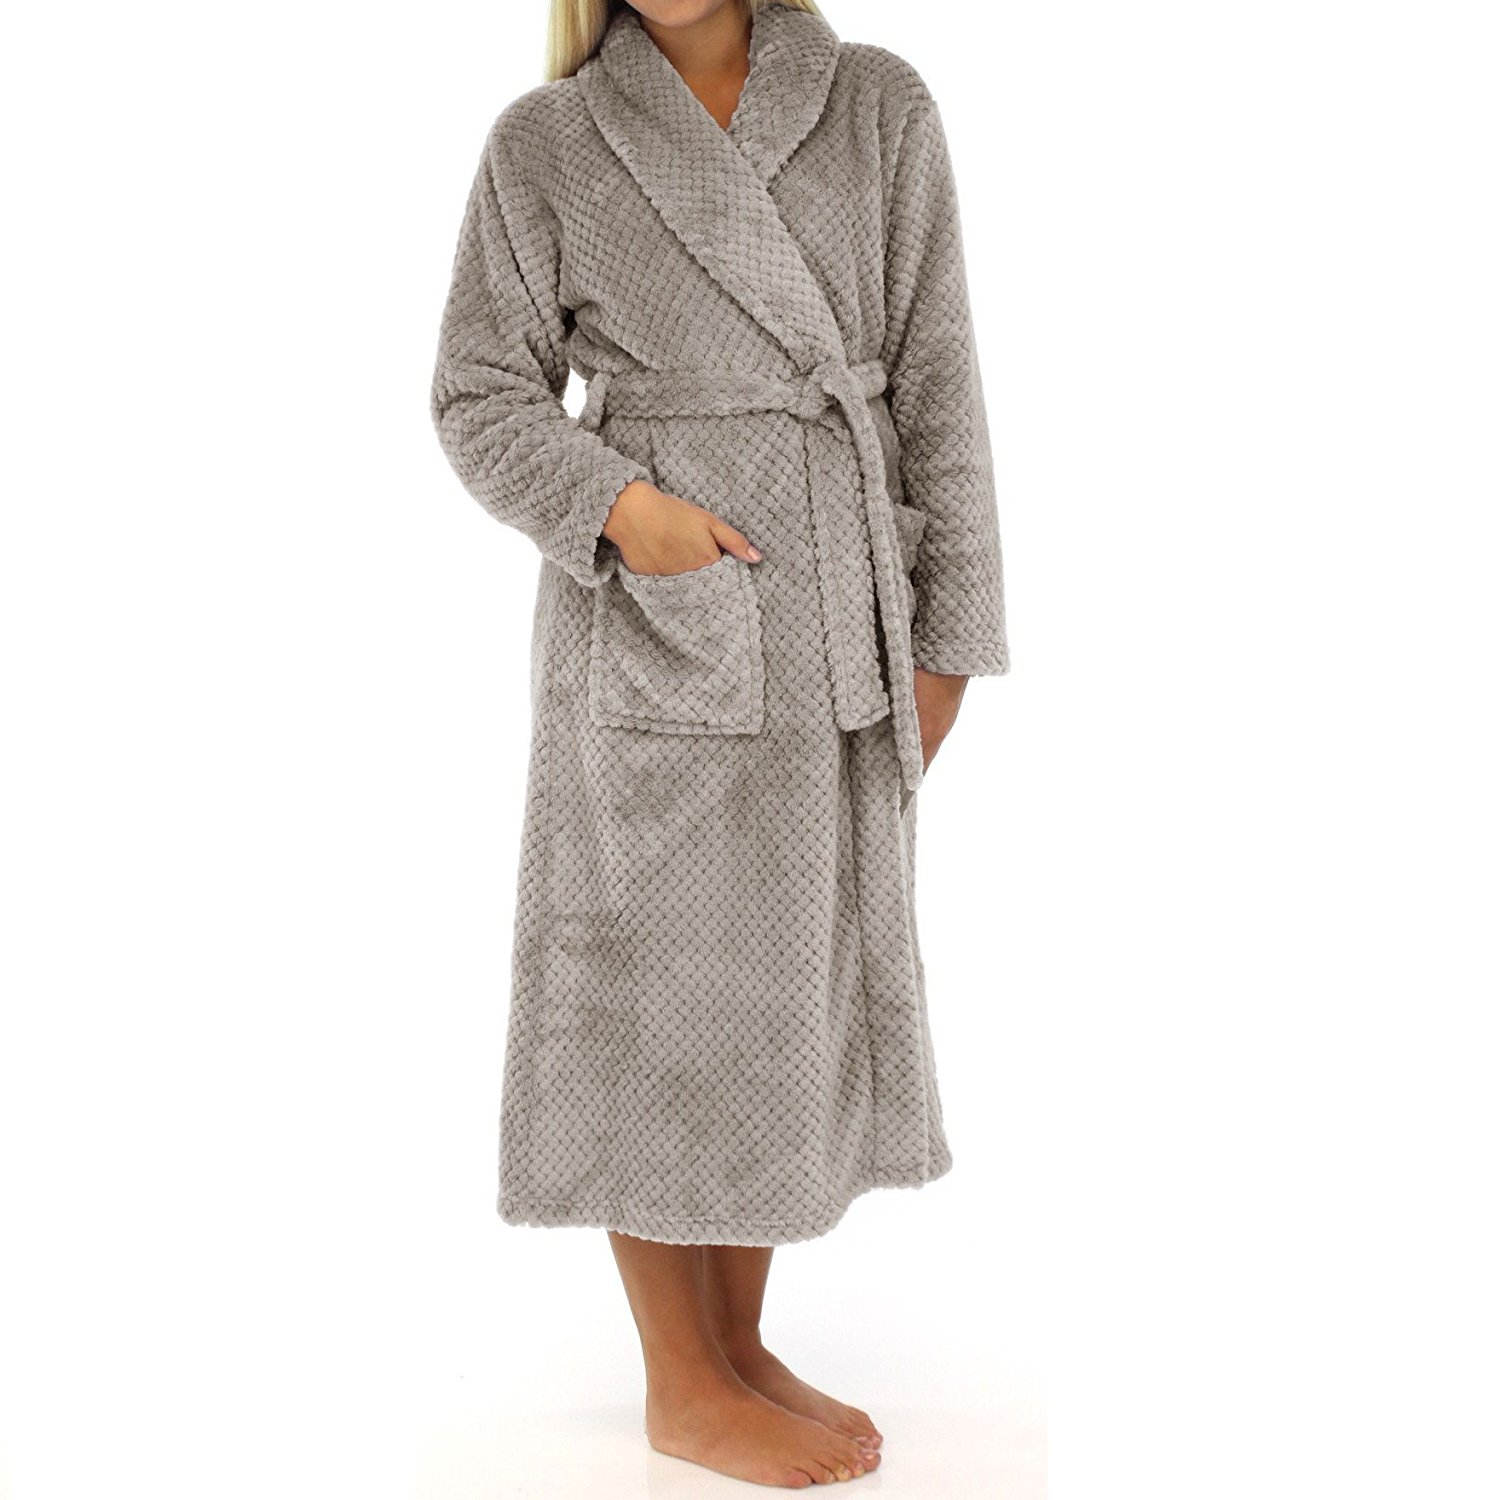 91dca983fa Get Quotations · Cheer Collection Luxurious Plush Bathrobe